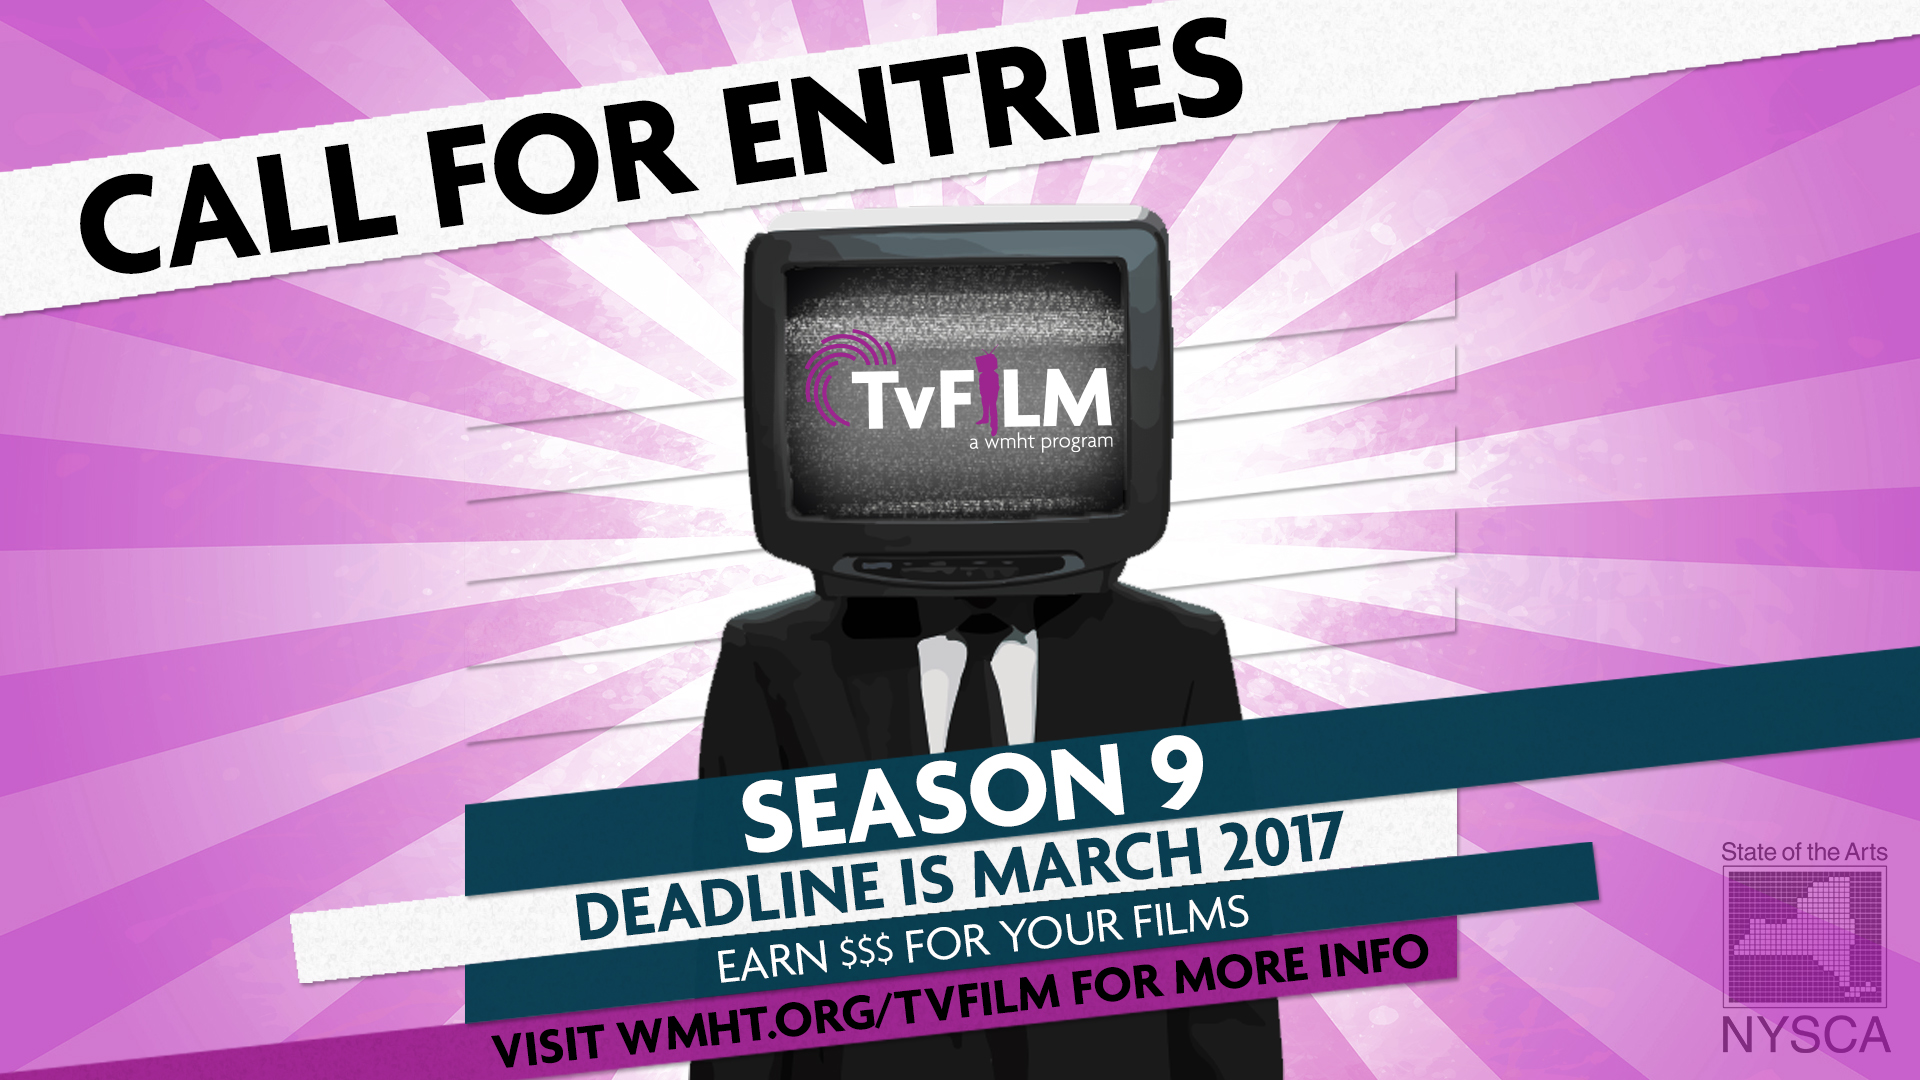 TvFILM Season 9 Call for Entries - Person with TV as head with TvFILM logo on screen